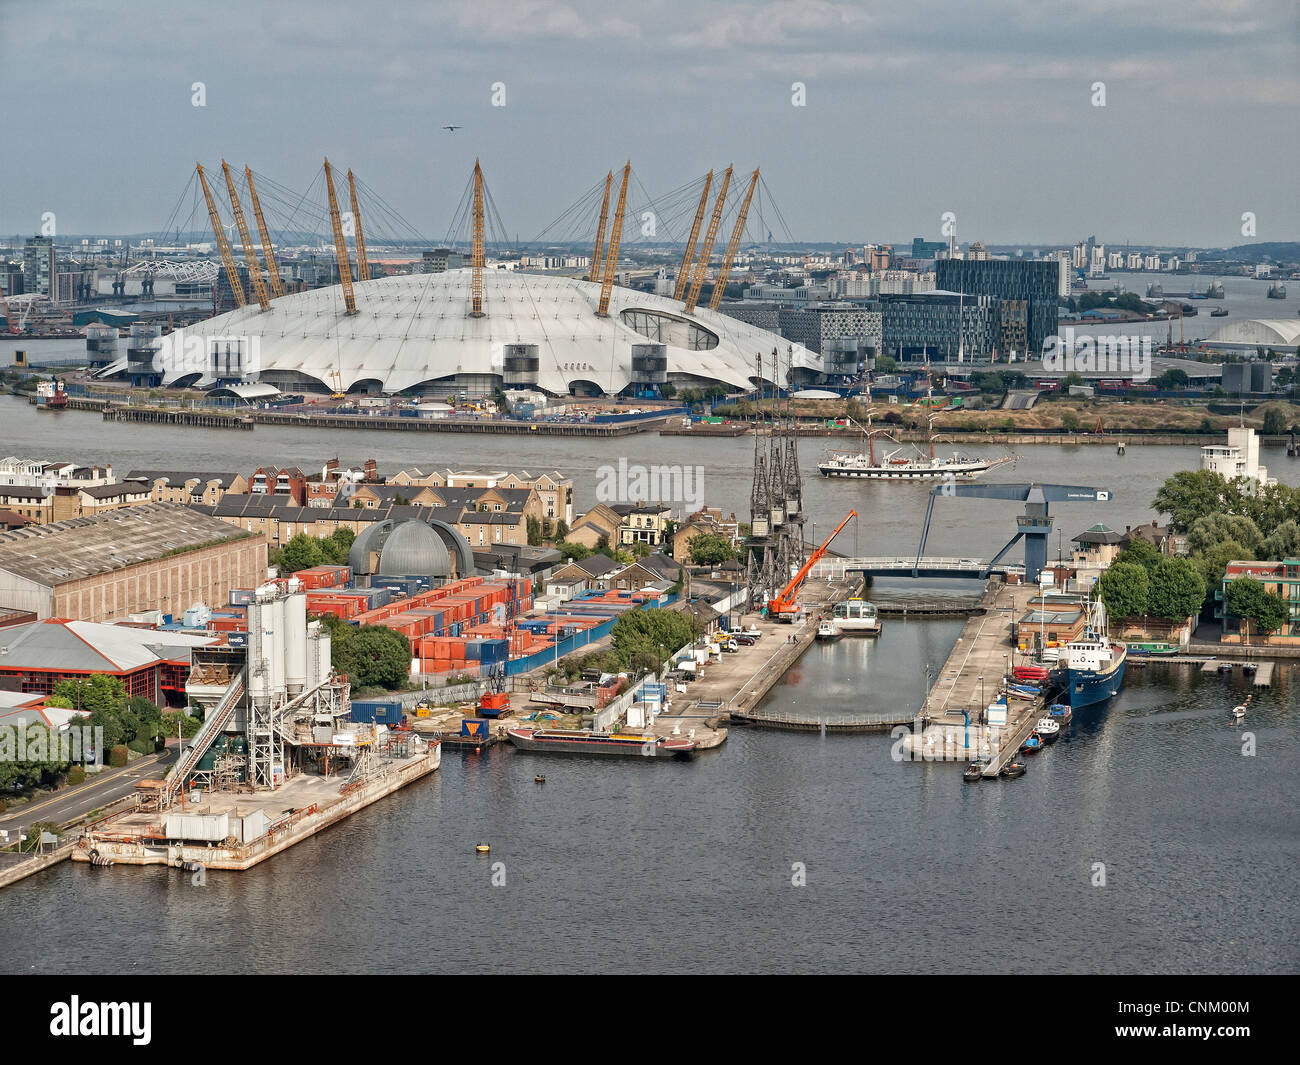 O2 arena and River Thames seen from Canary Wharf London Stock Photo